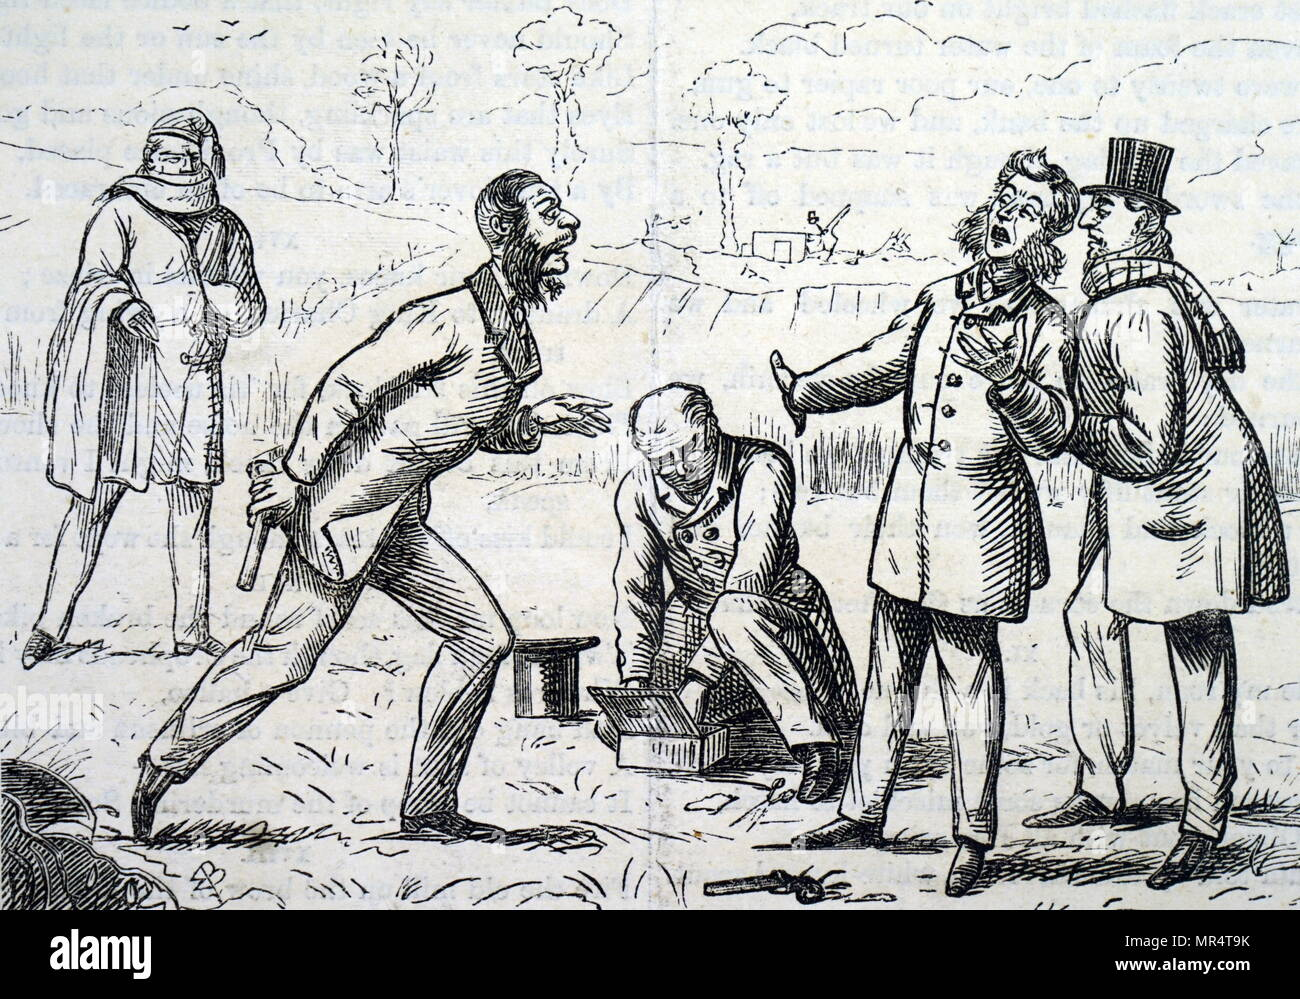 Cartoon depicting two quarrelling gentlemen preparing to duel to settle their argument. Dated 19th century - Stock Image